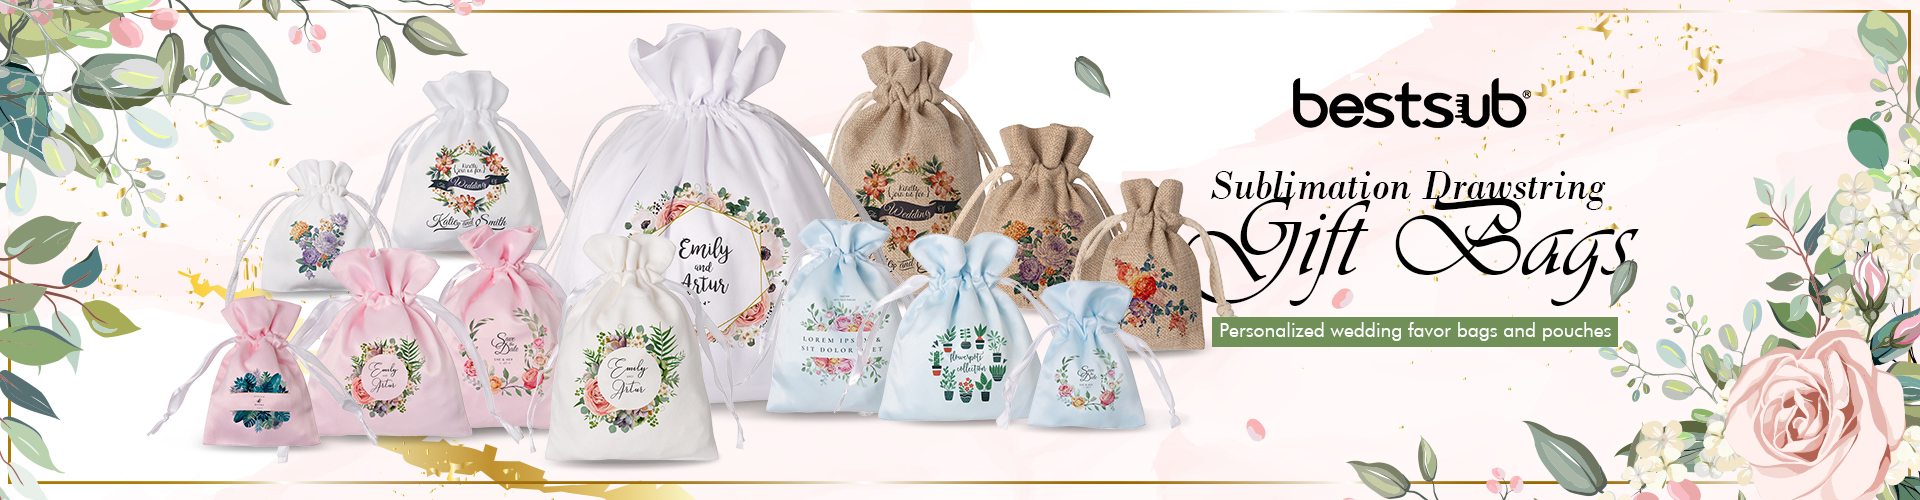 2020-6-24_Sublimation_Drawstring_Gift_Bags_new_web